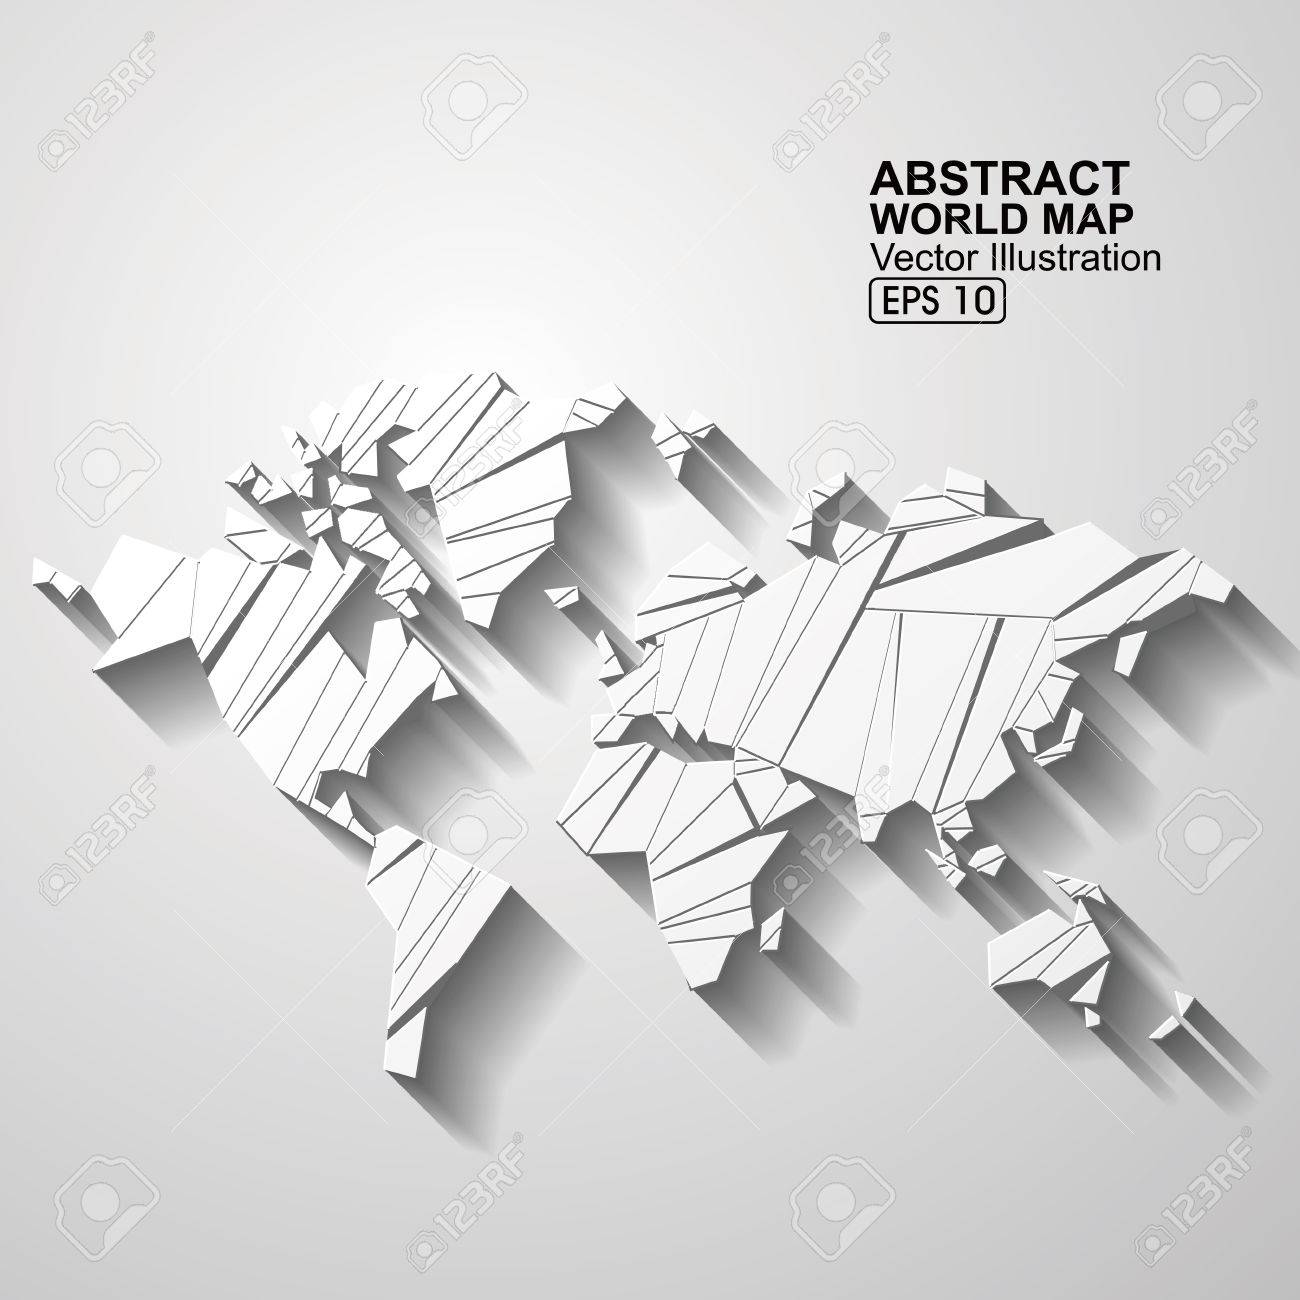 Abstract world map royalty free cliparts vectors and stock abstract world map stock vector 53259000 gumiabroncs Gallery